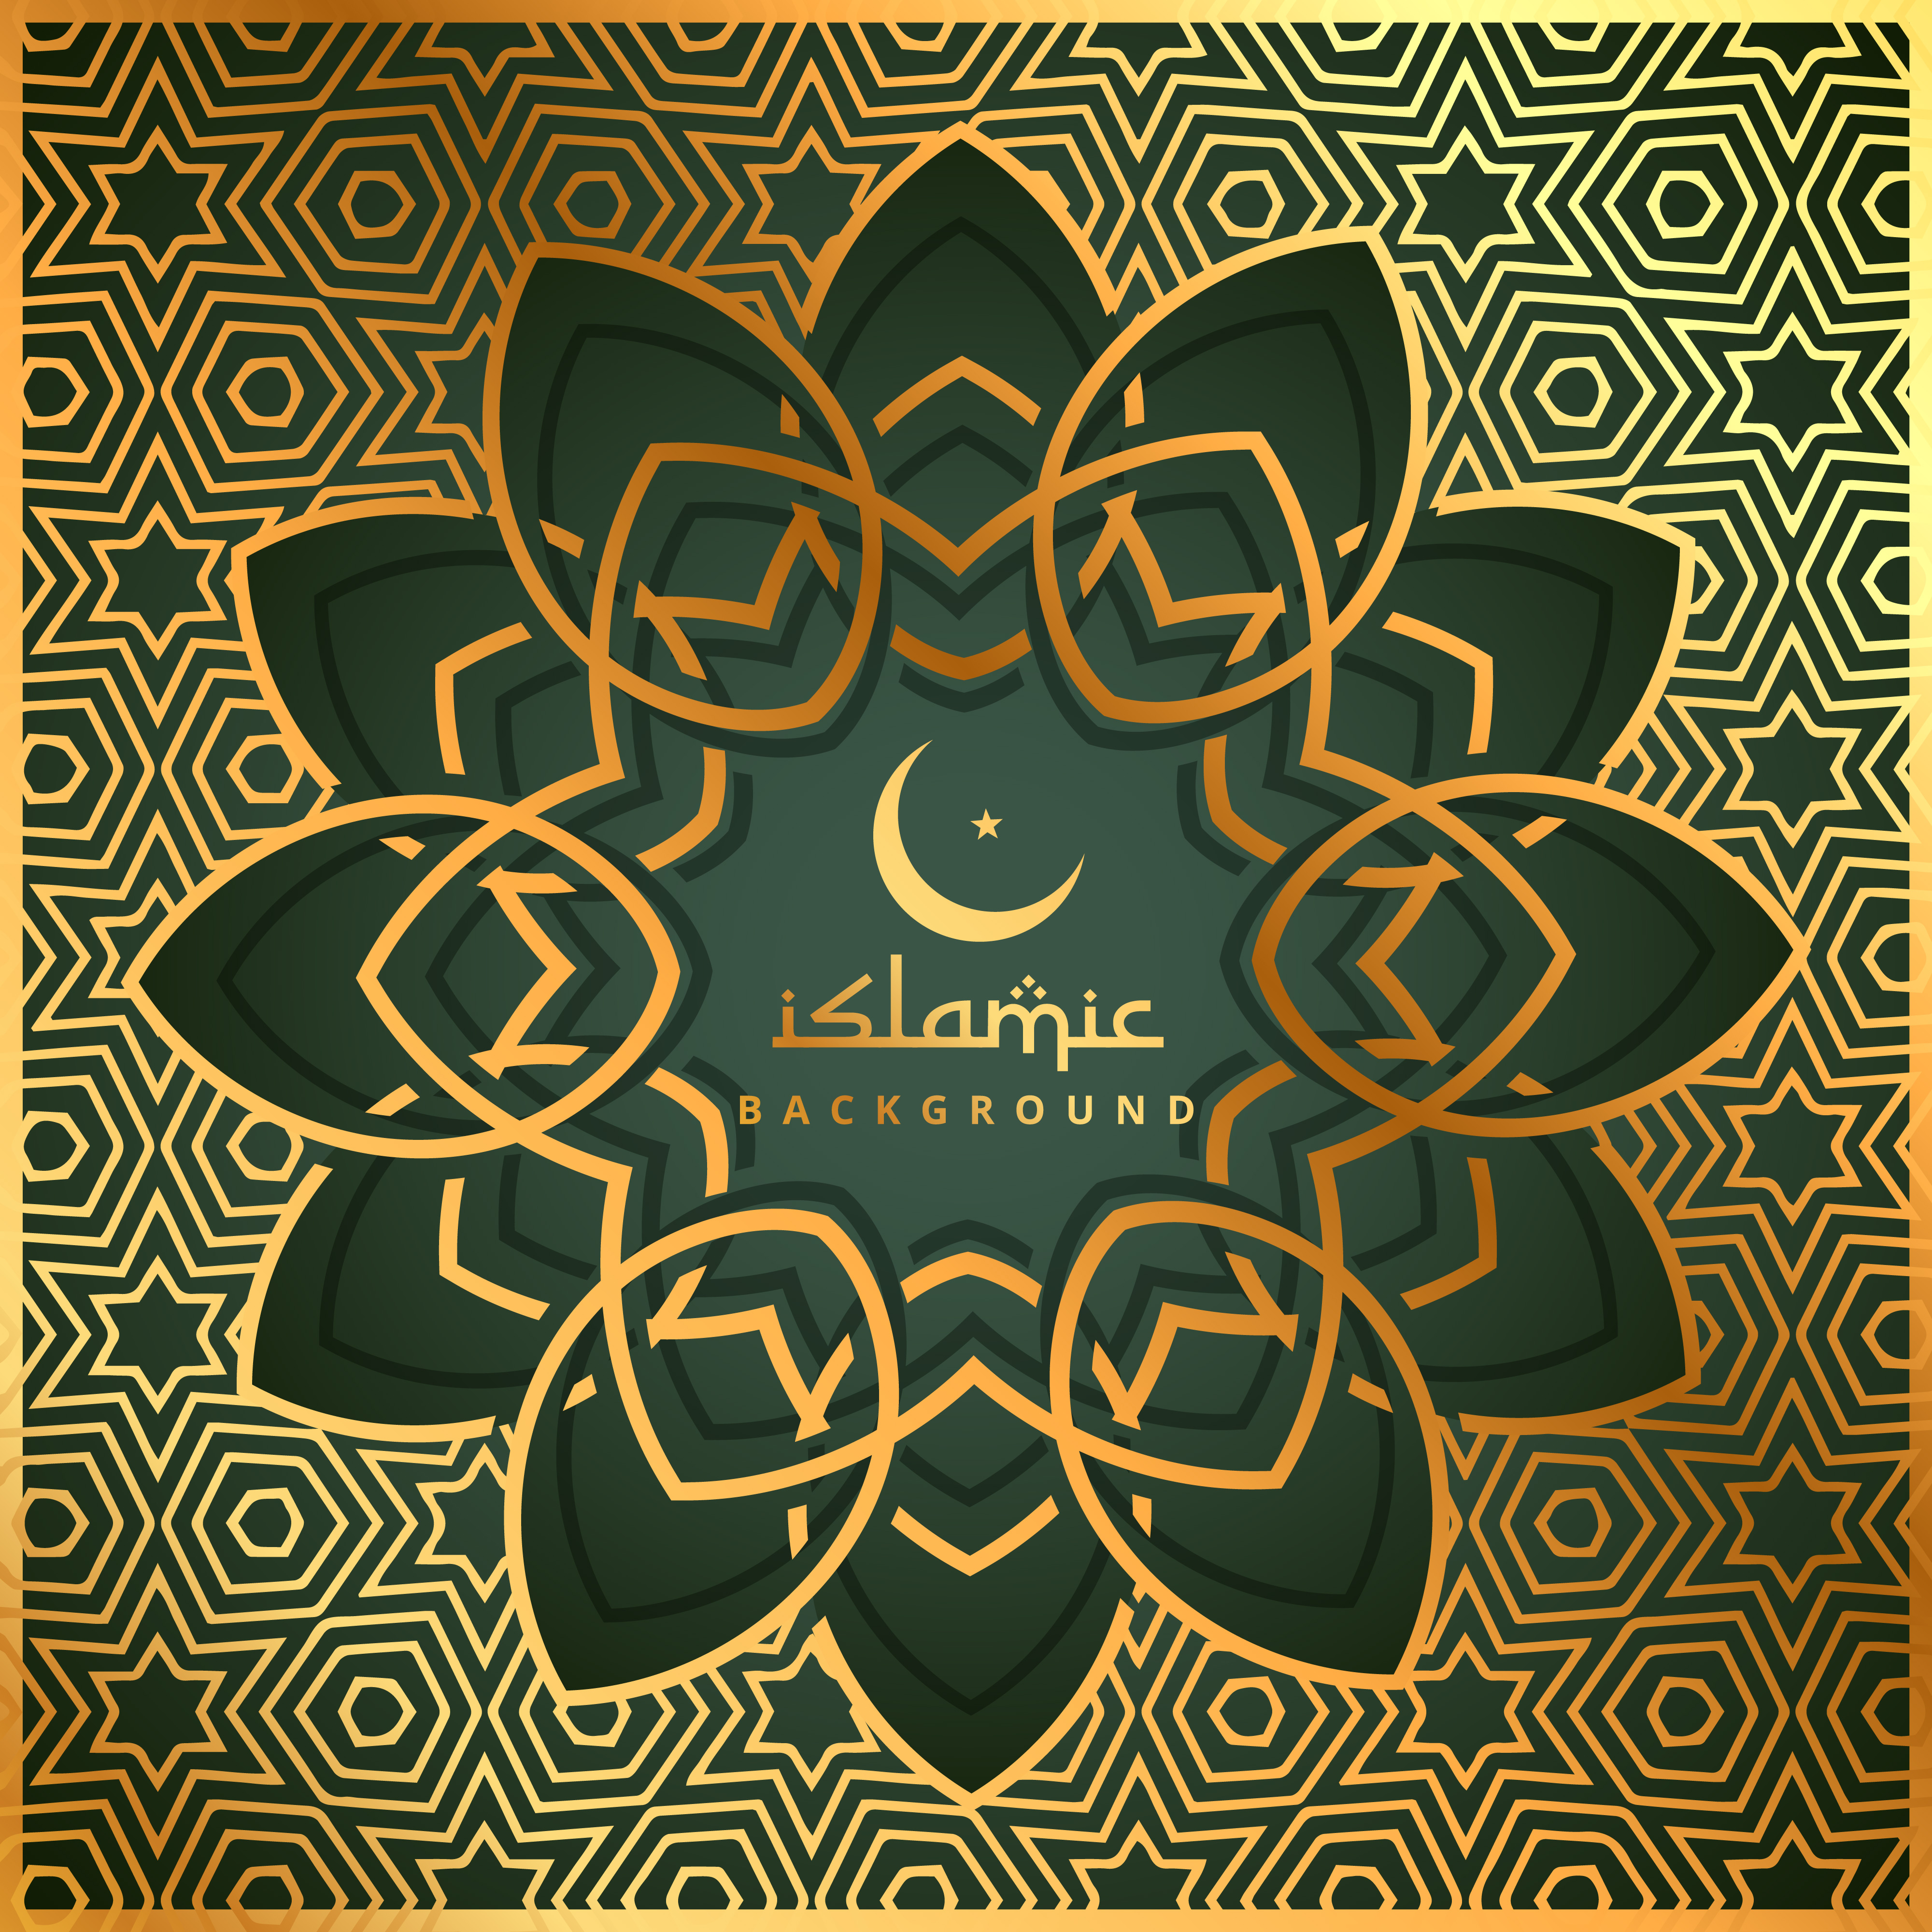 Arabic Book Cover Design Vector : Islamic shape background with golden pattern download